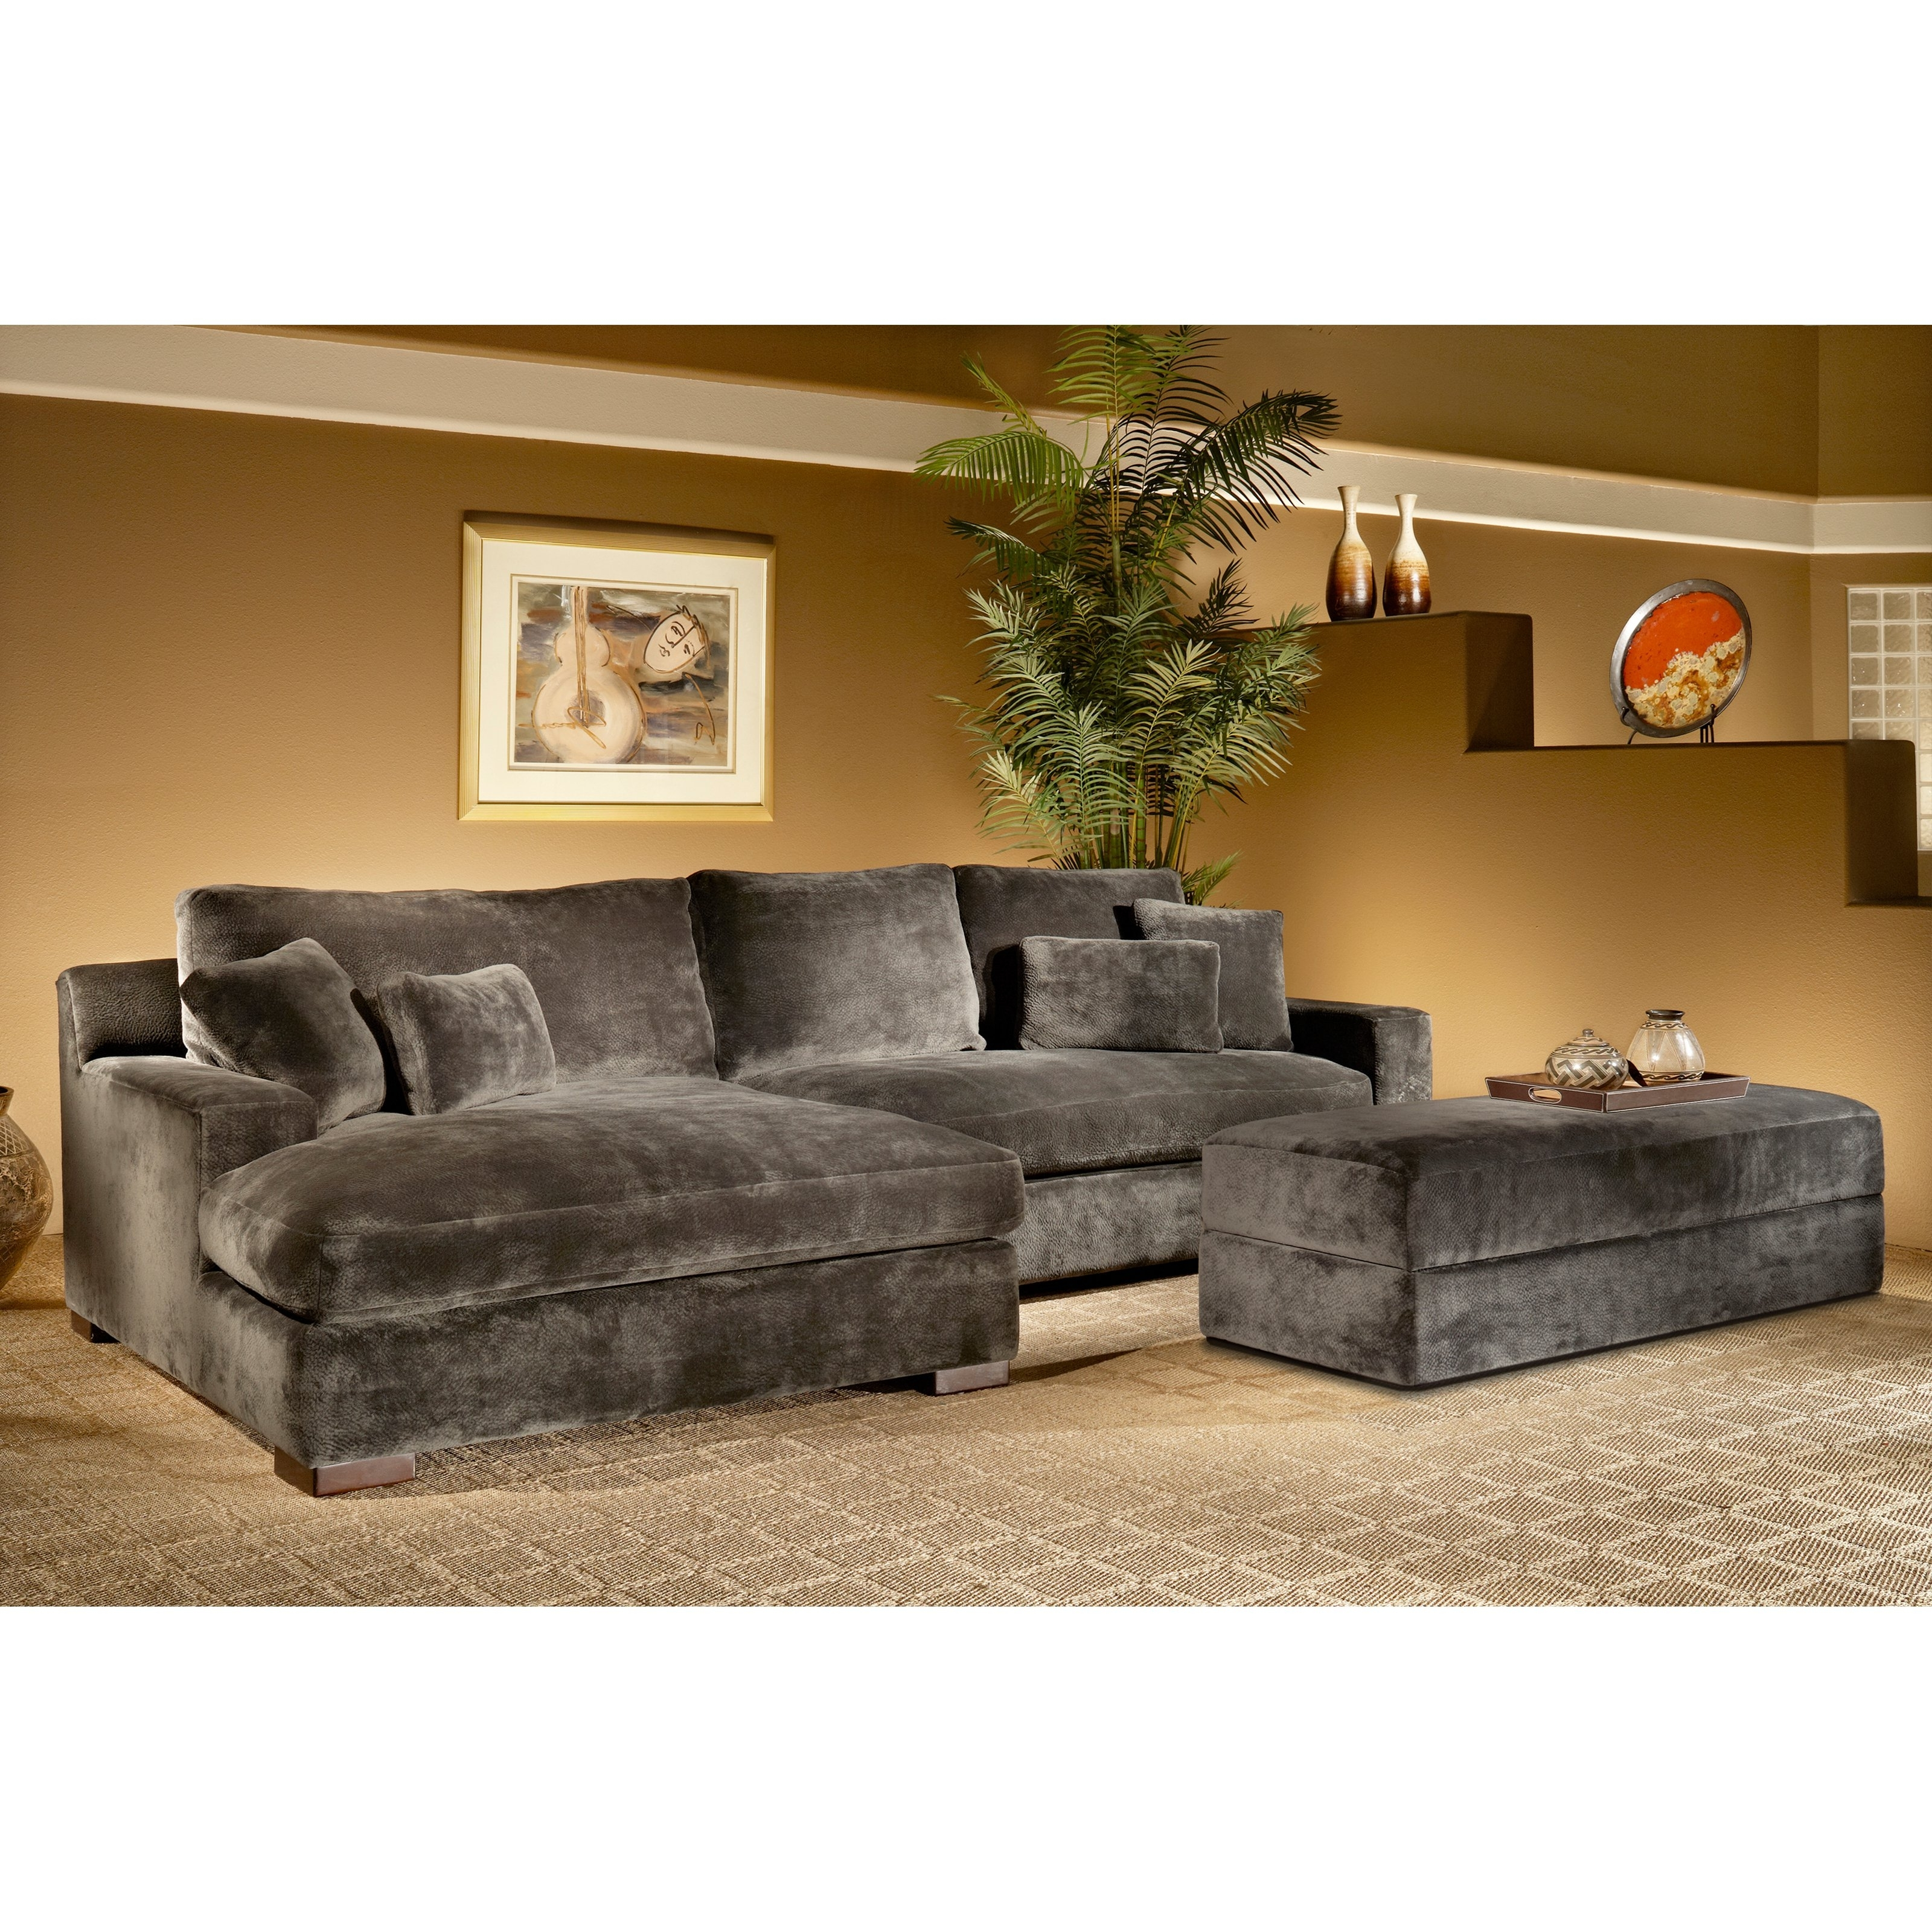 Transitional Sectional Comfy Amp Stylish Home Decor T For Malbry Point 3 Piece Sectionals With Laf Chaise (Image 25 of 25)